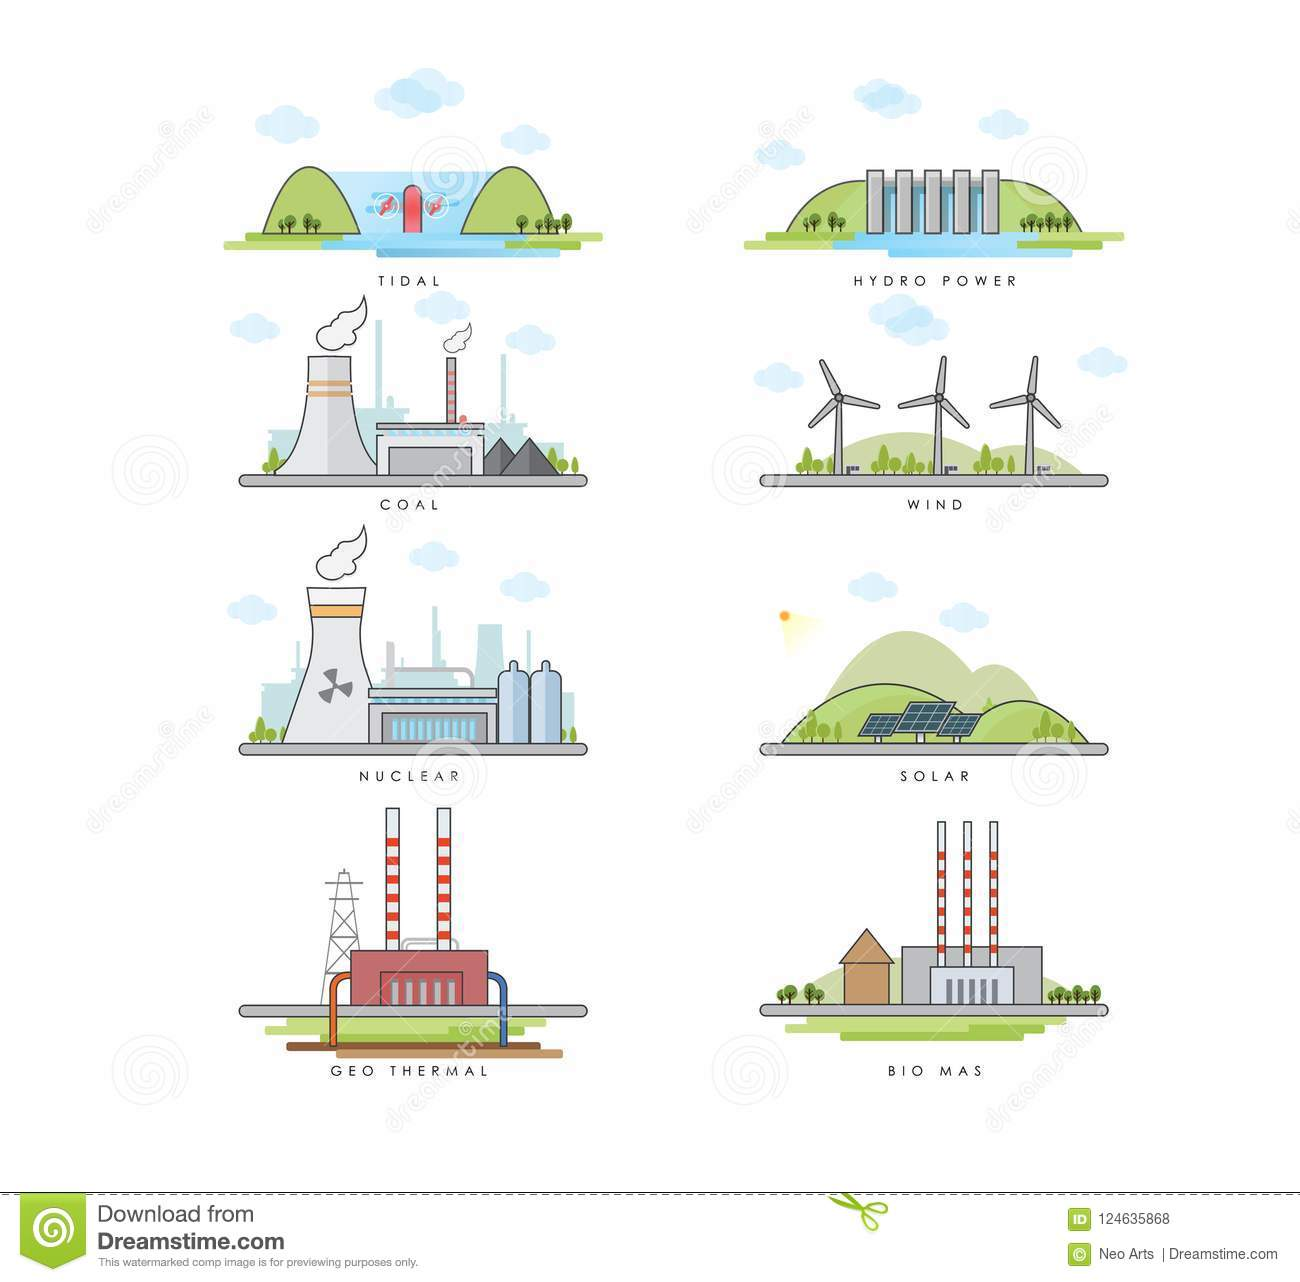 hight resolution of vector illustration of different type electric power plant tidal hydro power coal wind nuclear solar geo thermal biomass energy